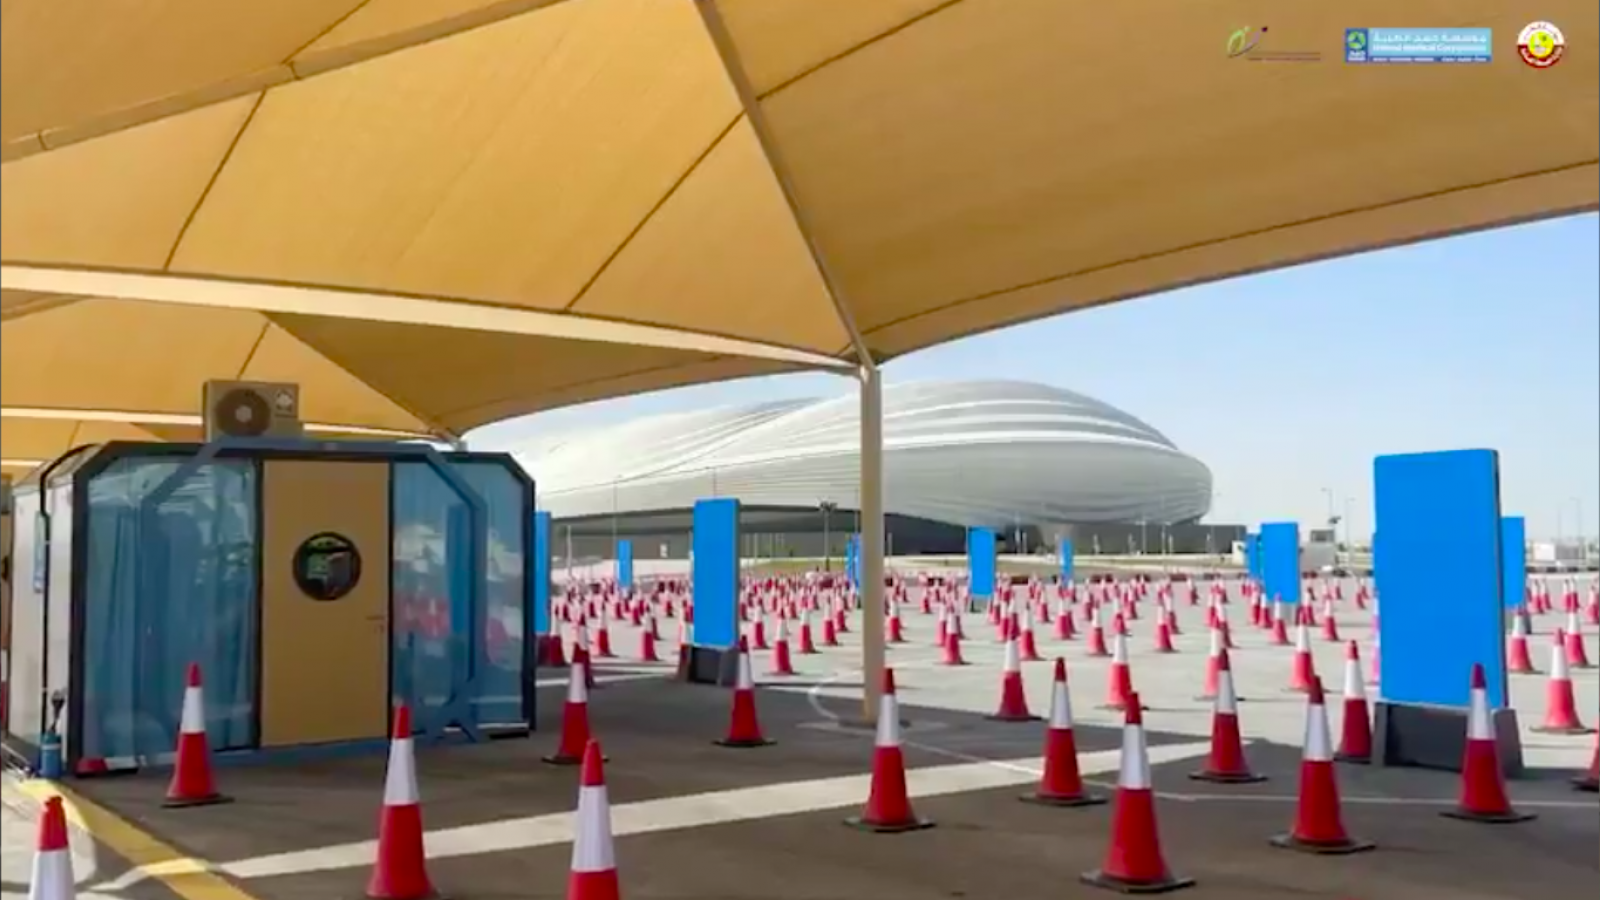 All you need to know about Qatar's second COVID-19 drive-through vaccination center